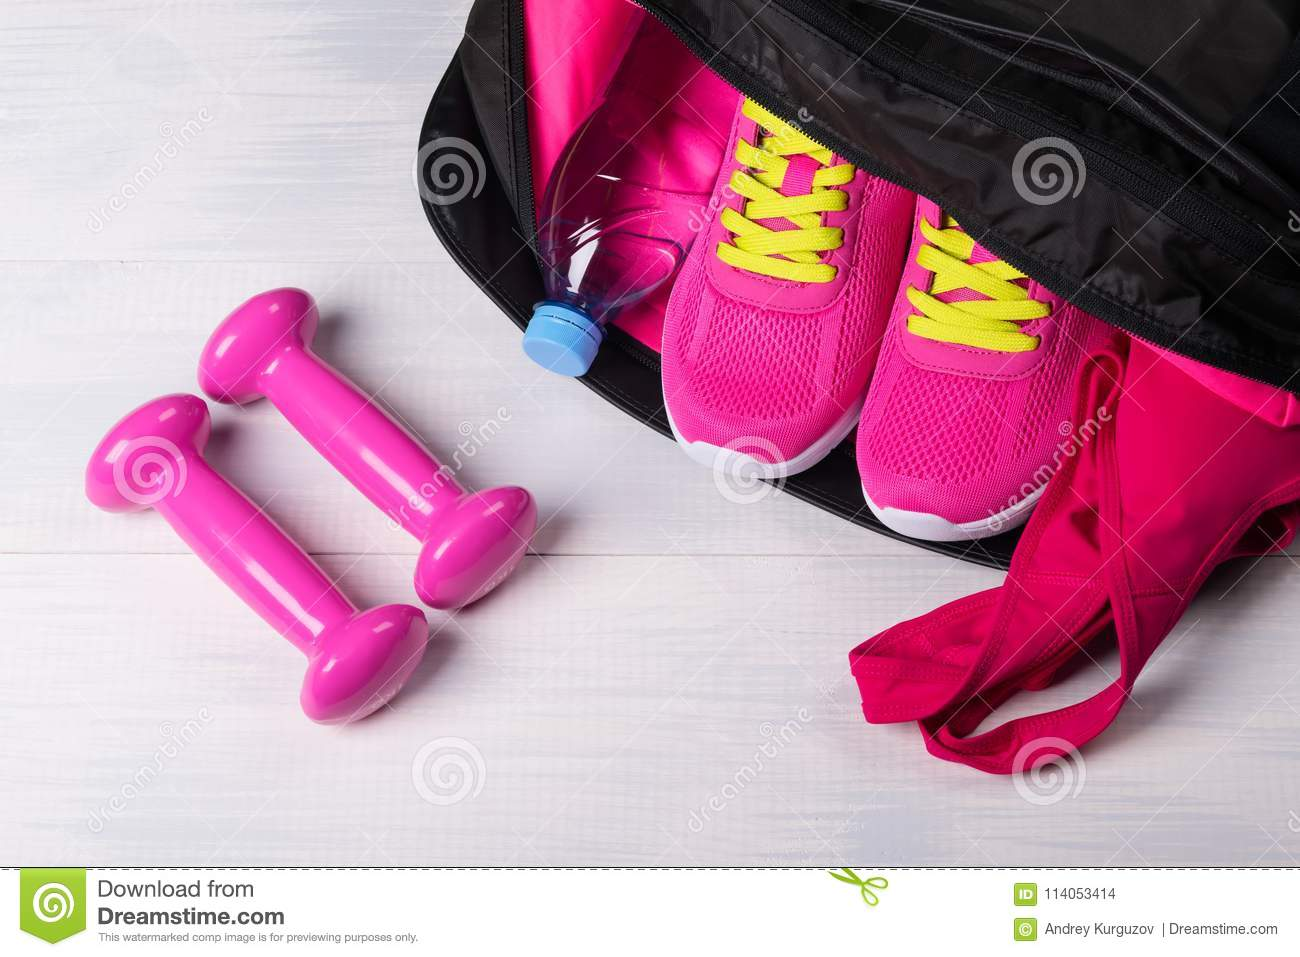 9d1c416e4e On The Wooden Floor Sports Bag With Pink Things In It Uncovered